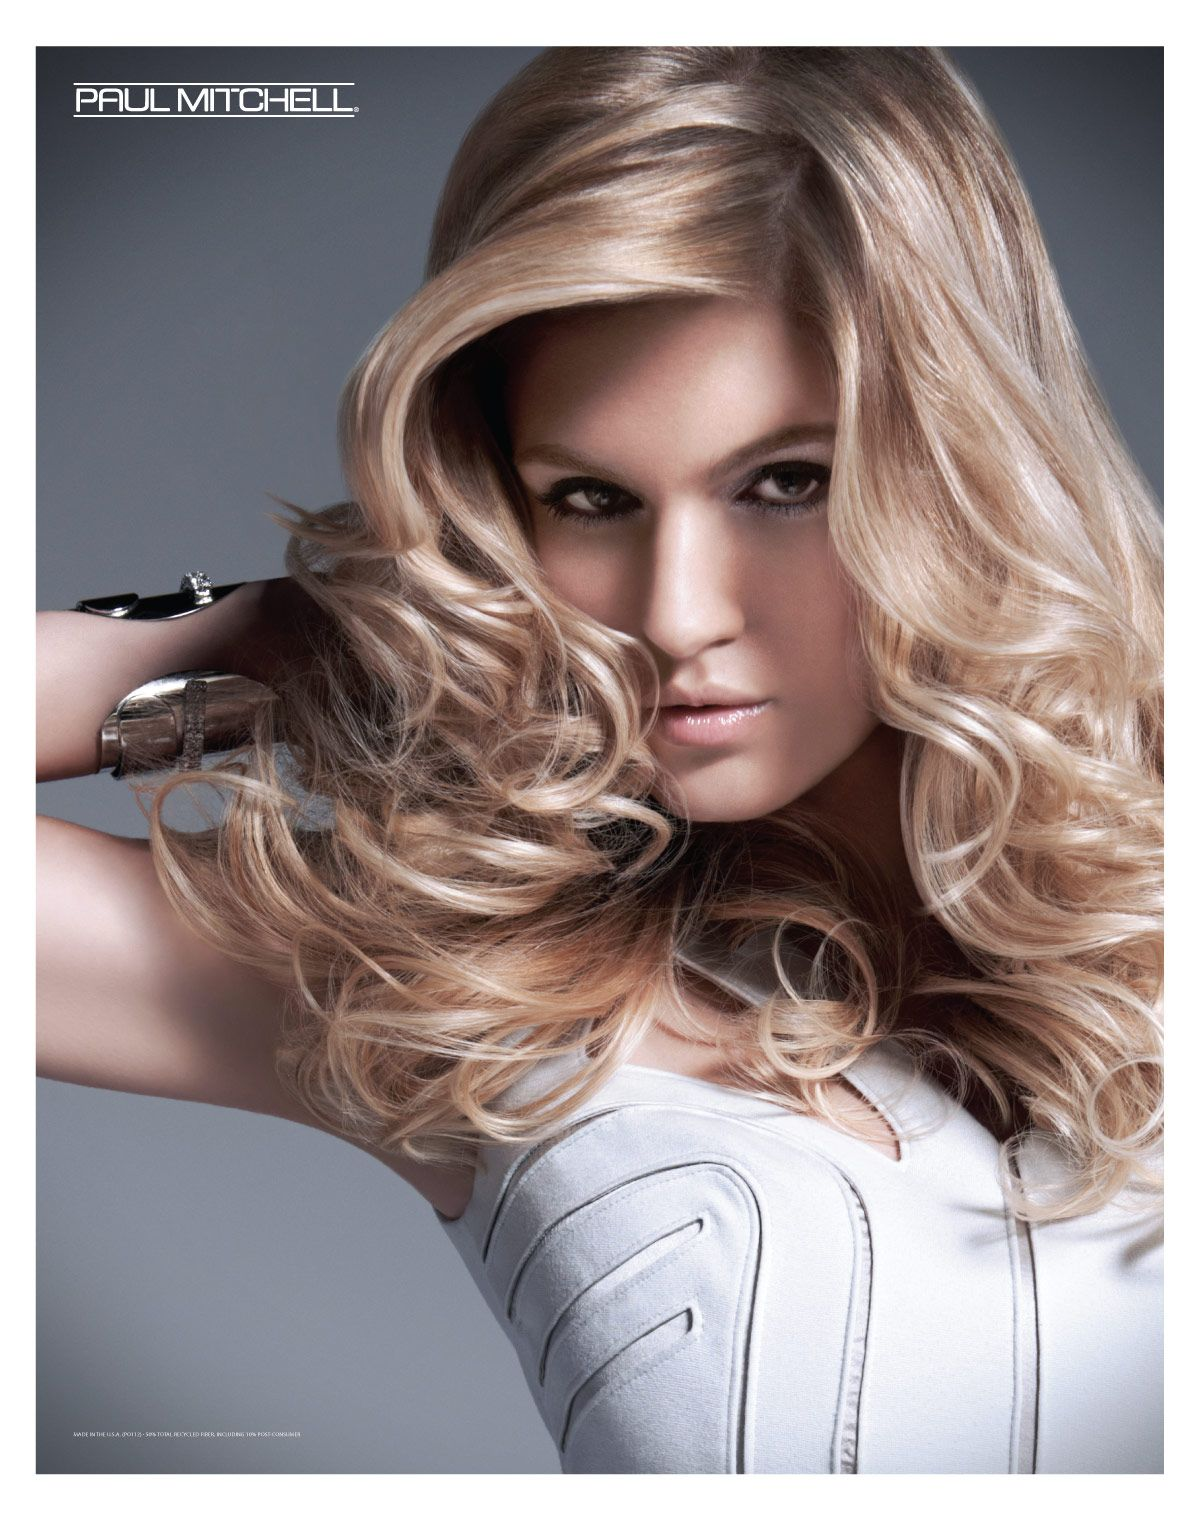 Paul Mitchell Mitch Poster Cool Hairstyles Best Hair Salon Long Hair Styles